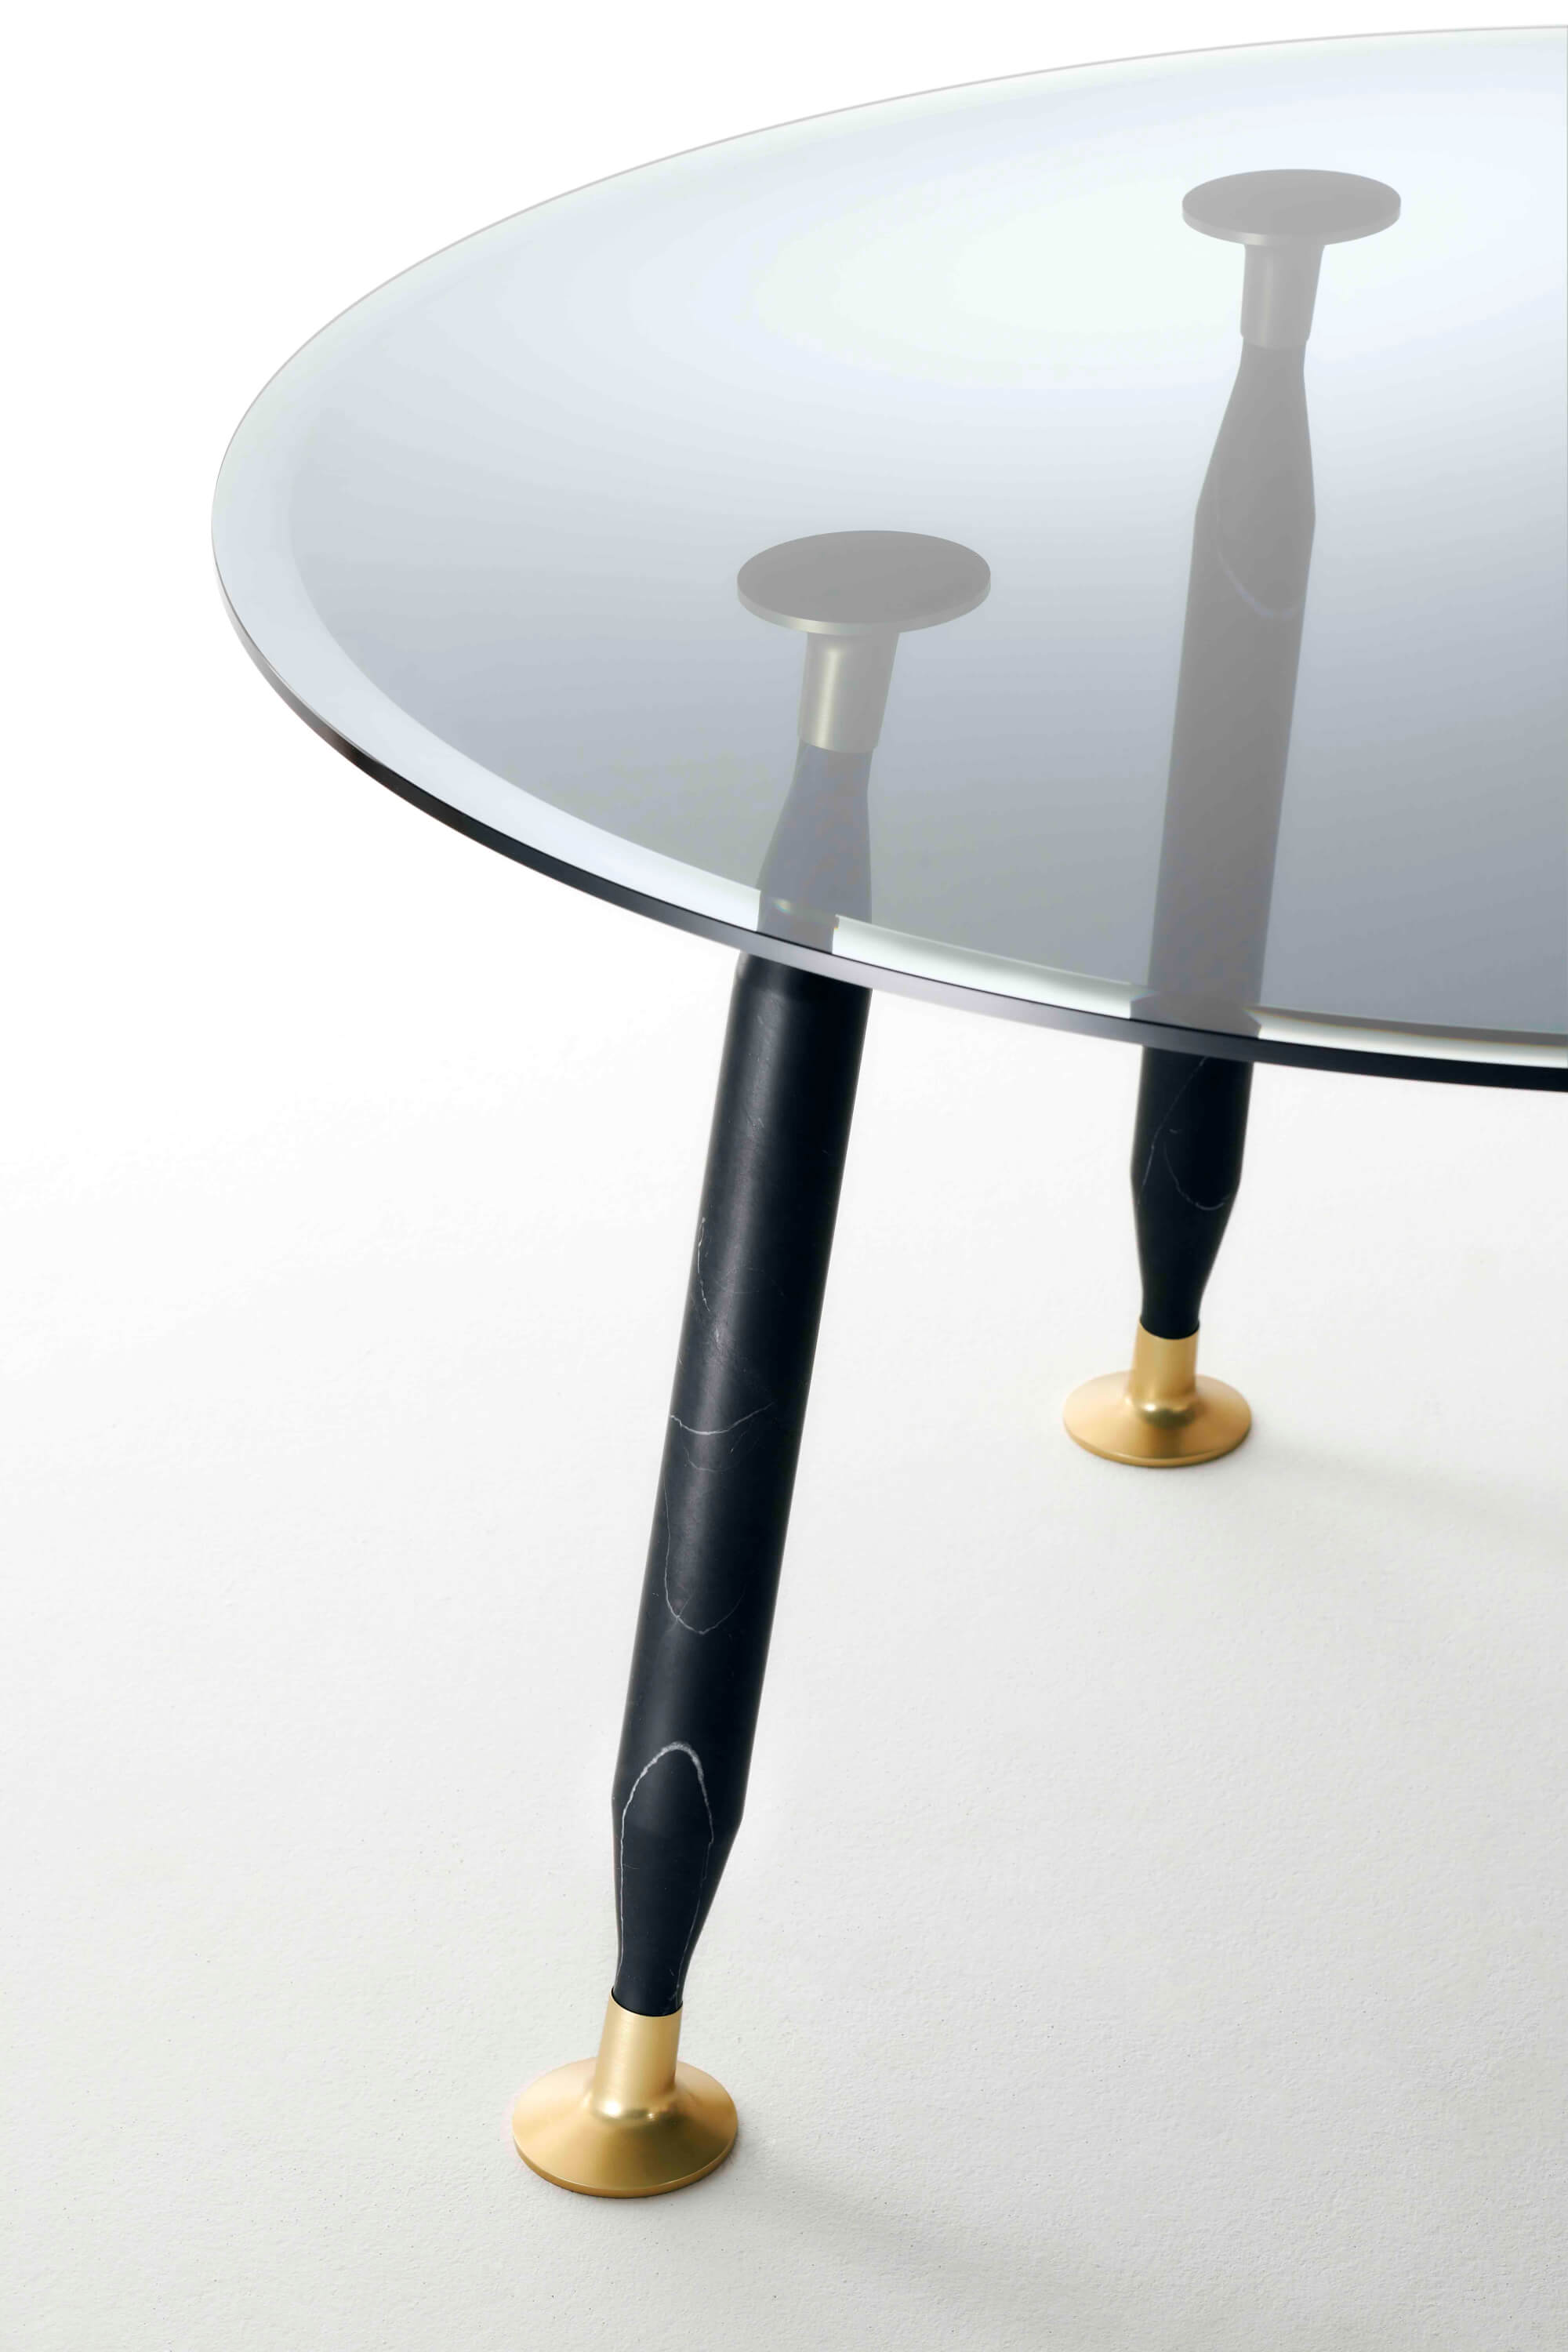 LADY HIO by Starck with S. Schito (GLAS ITALIA) - Tables